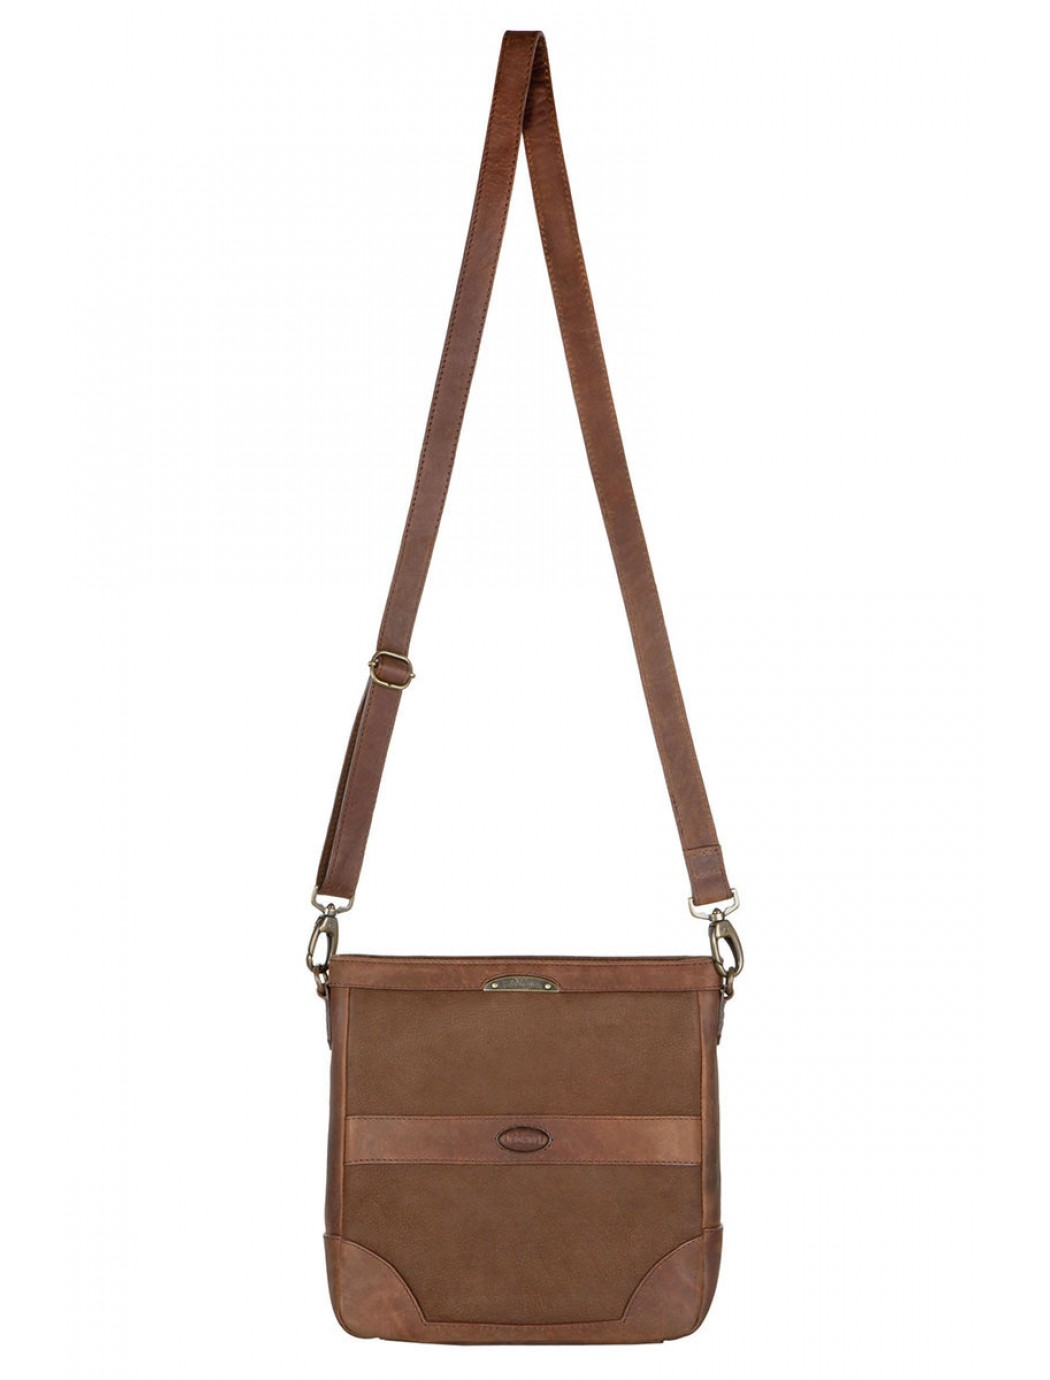 ardmore-womens-bags-luggage-walnut